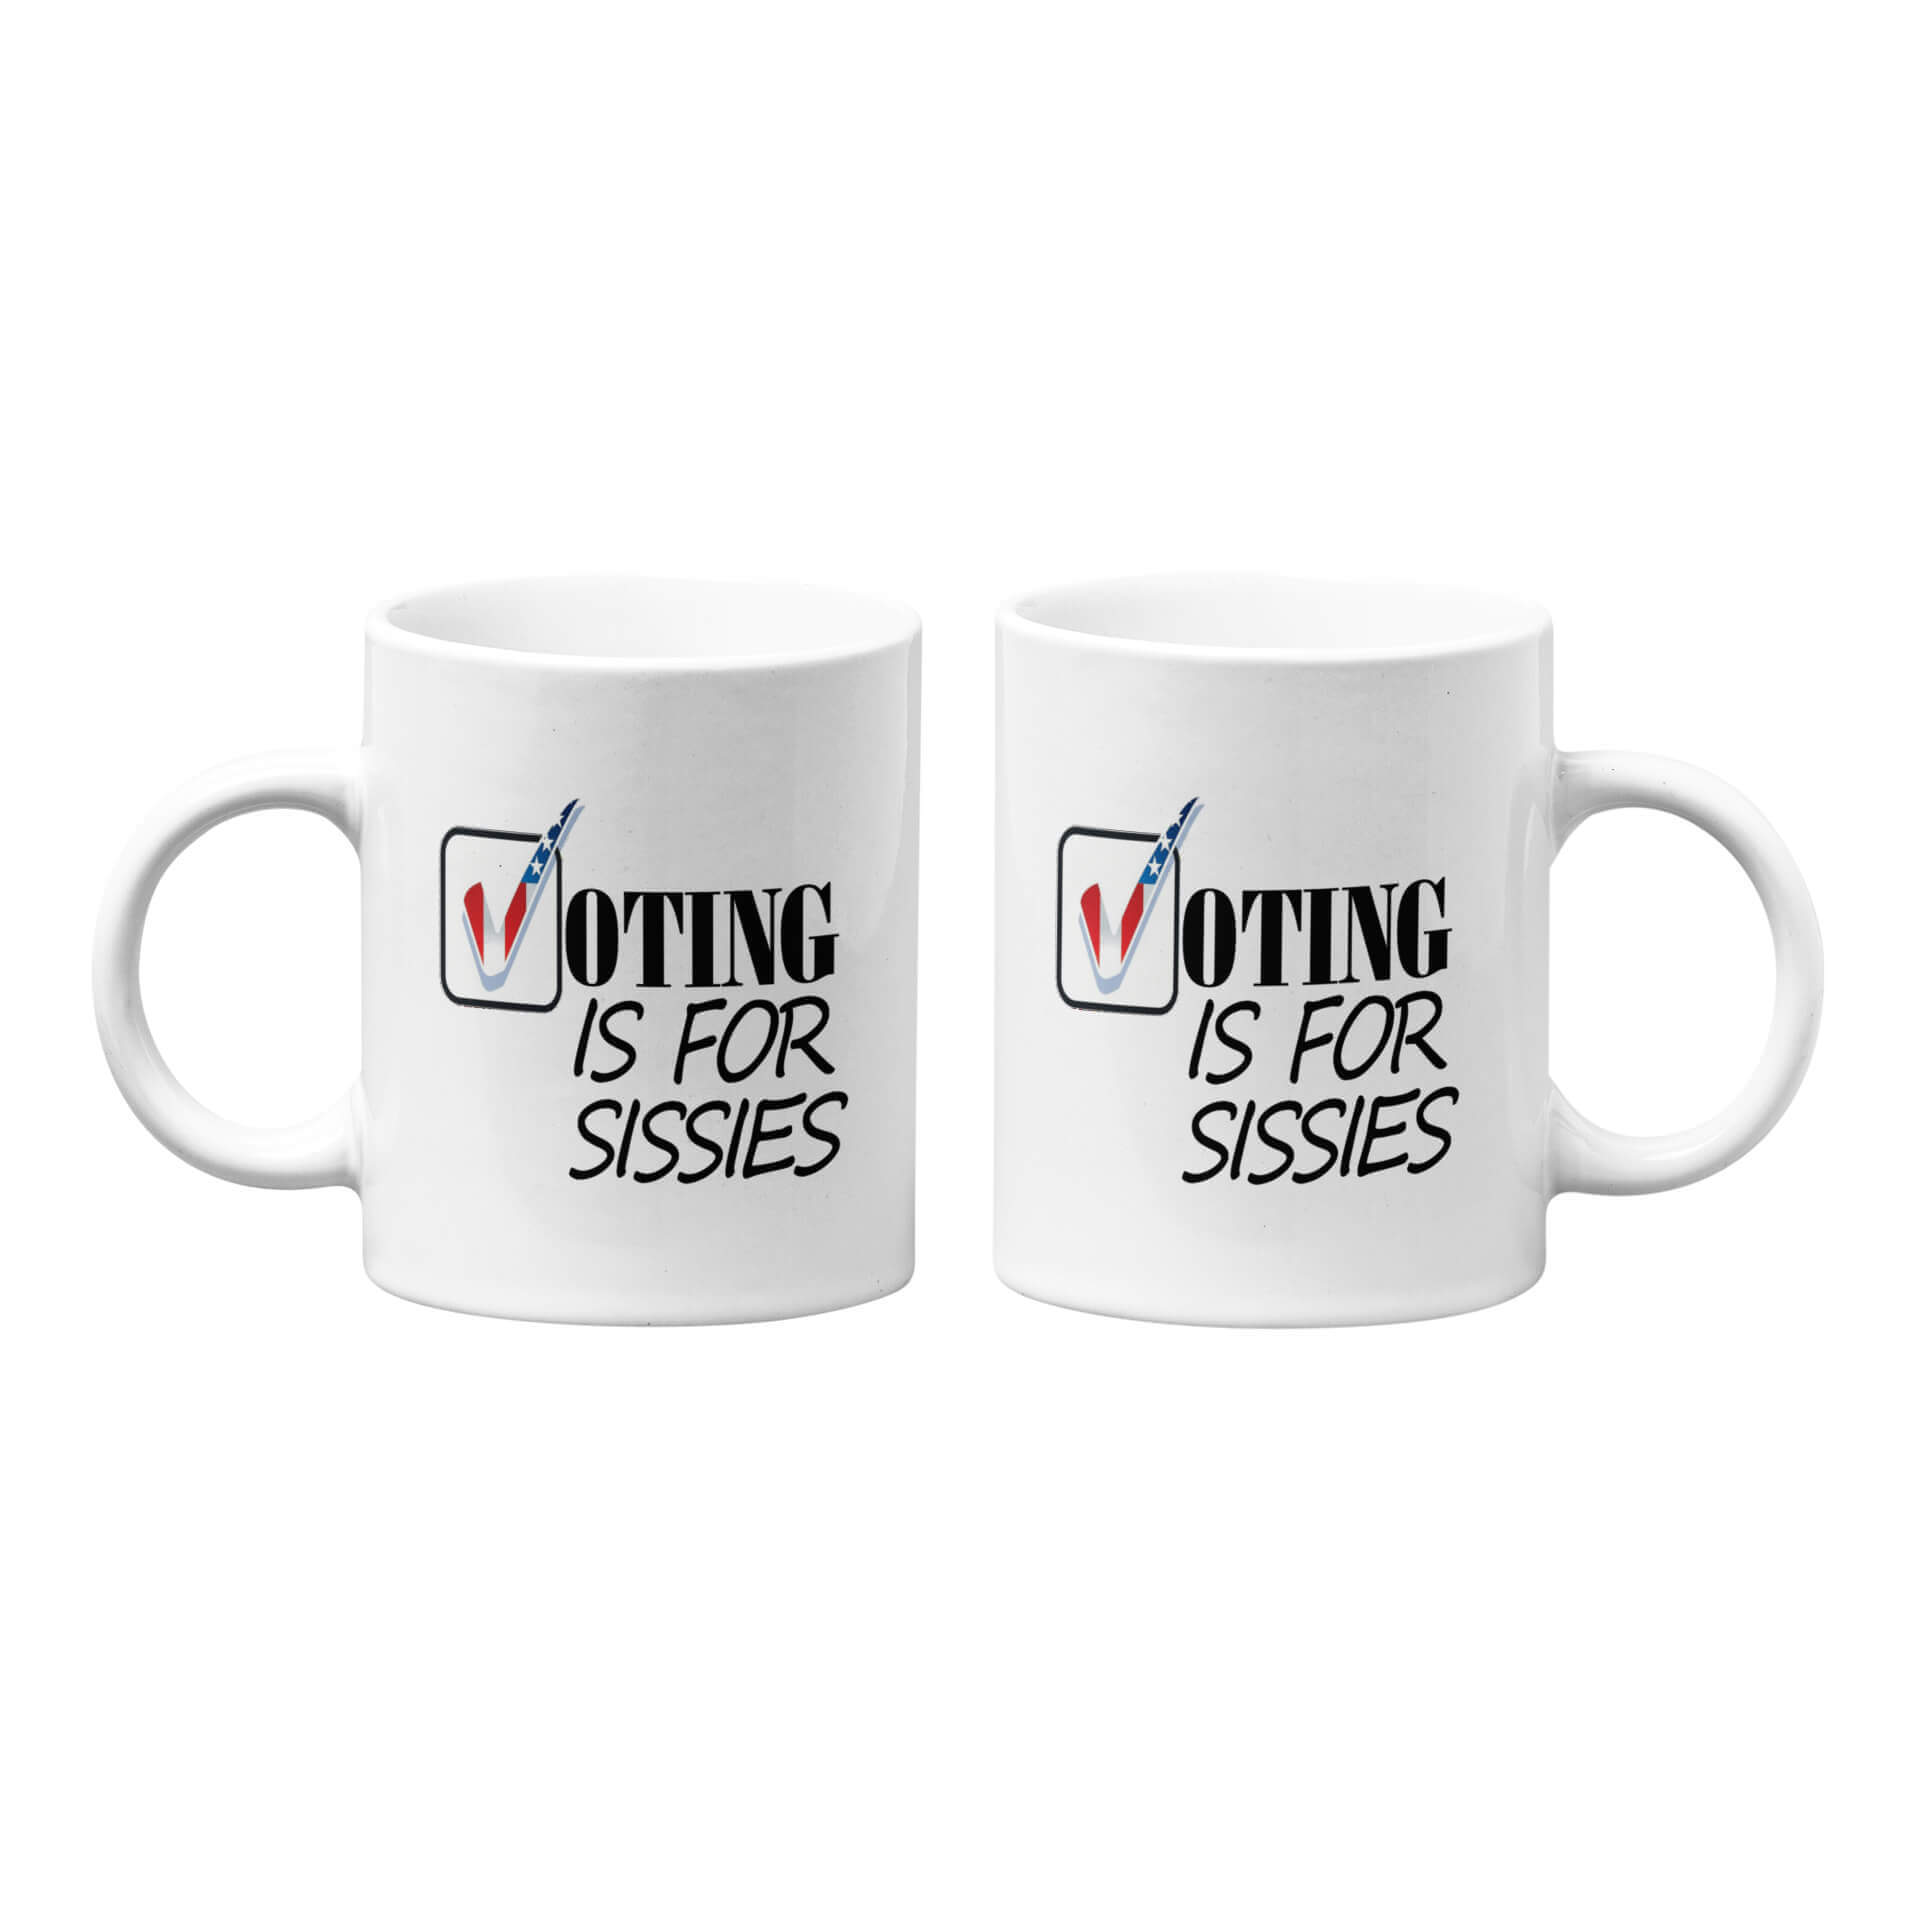 Voting Is For Sissies Mug